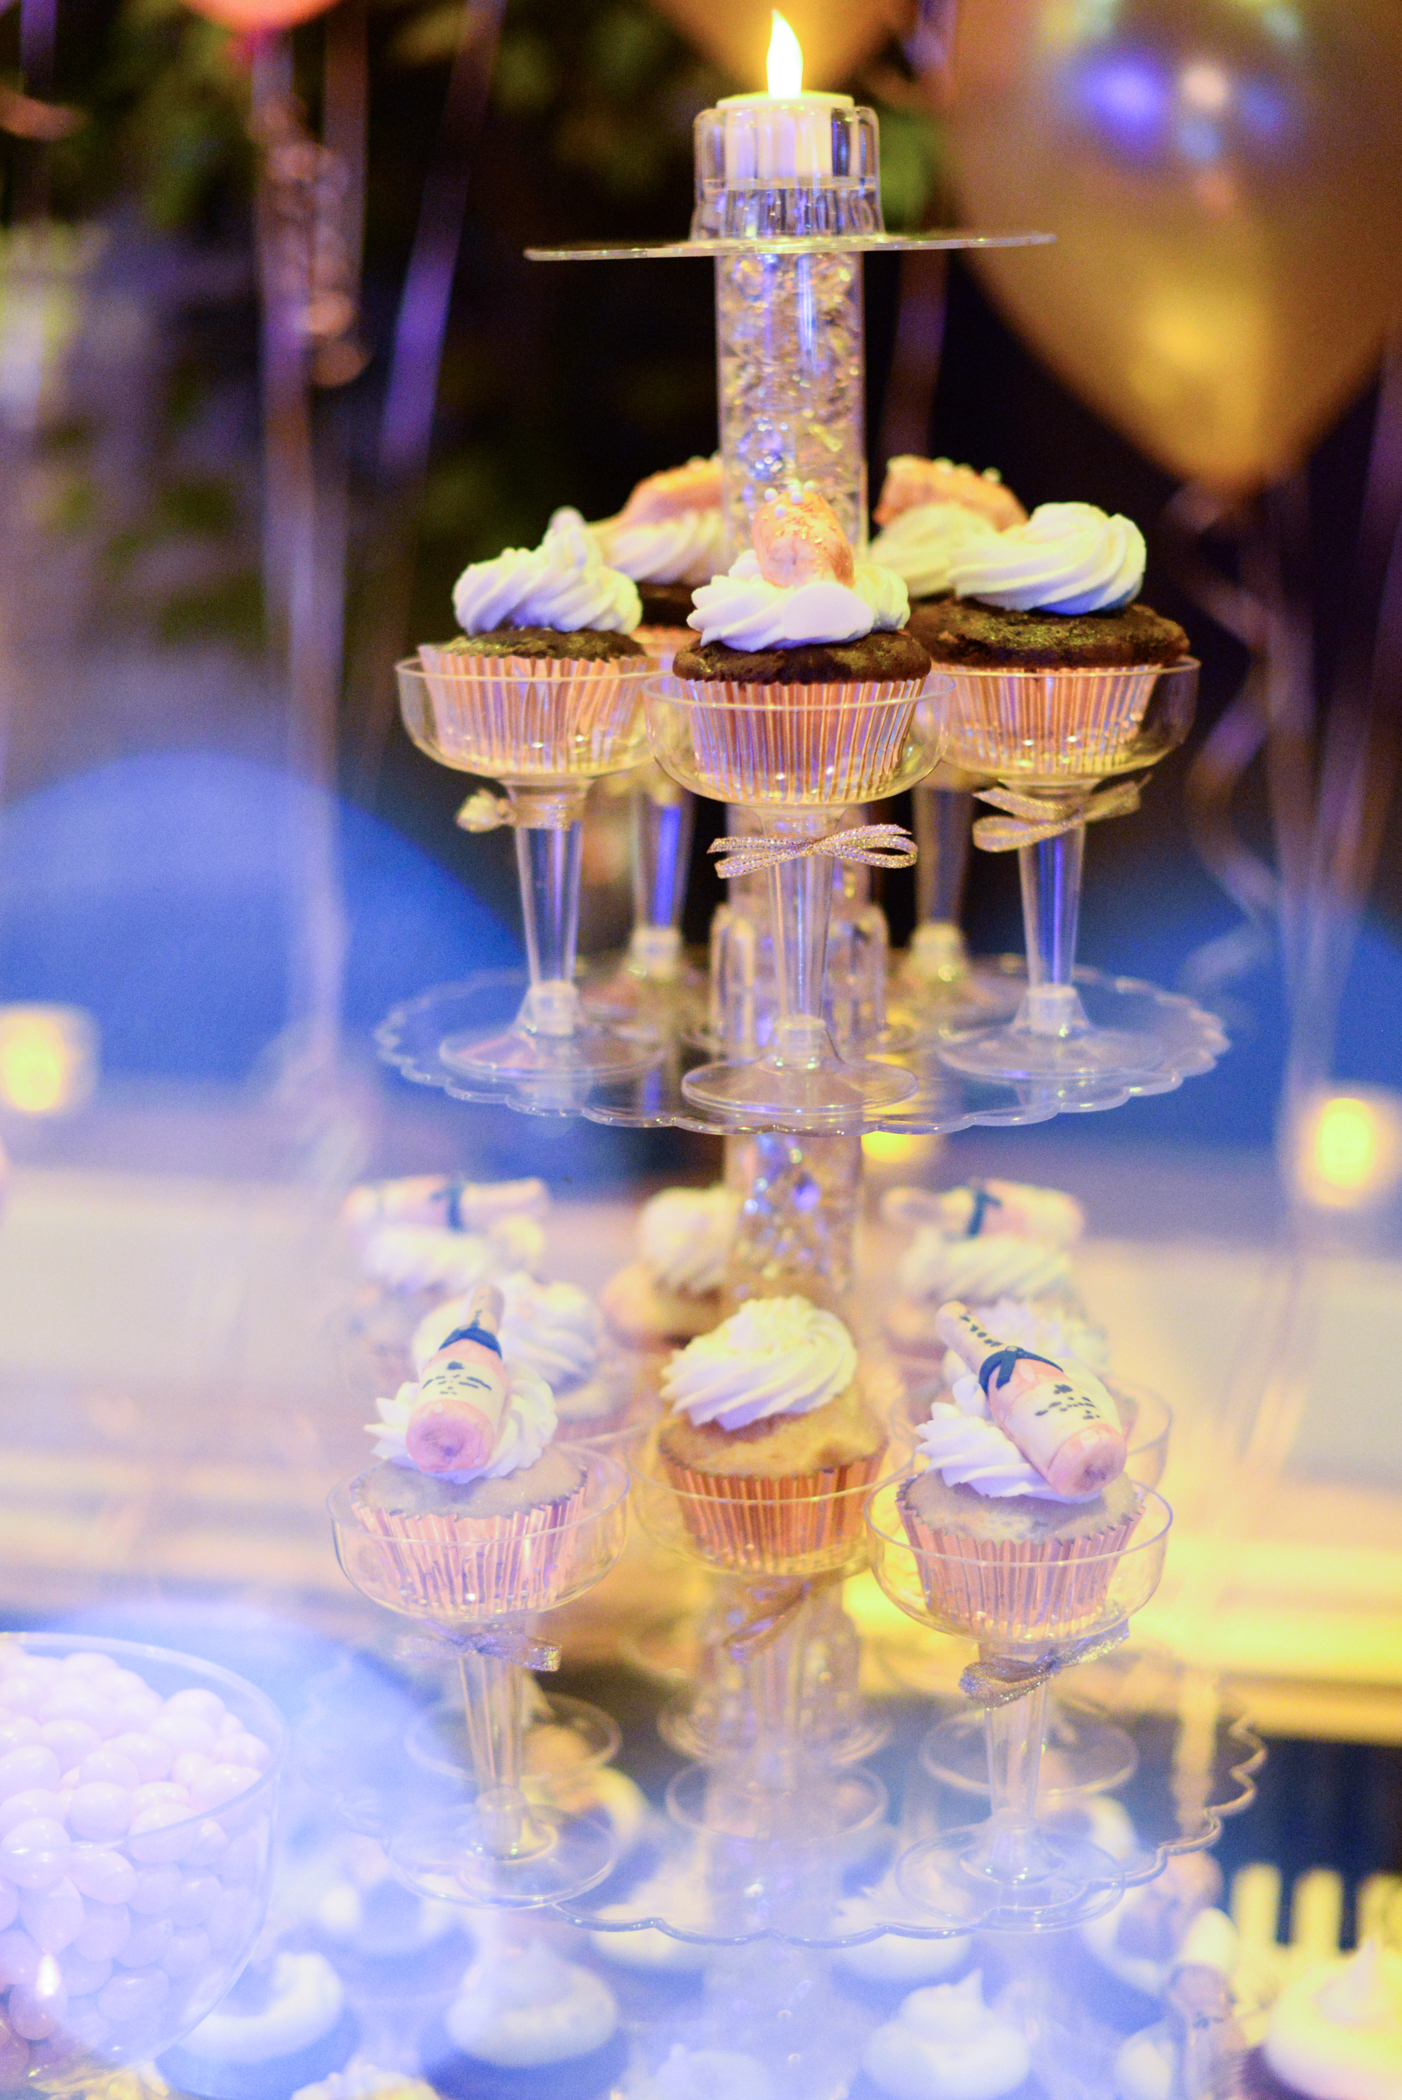 Champagne Party Details Small-29.JPG